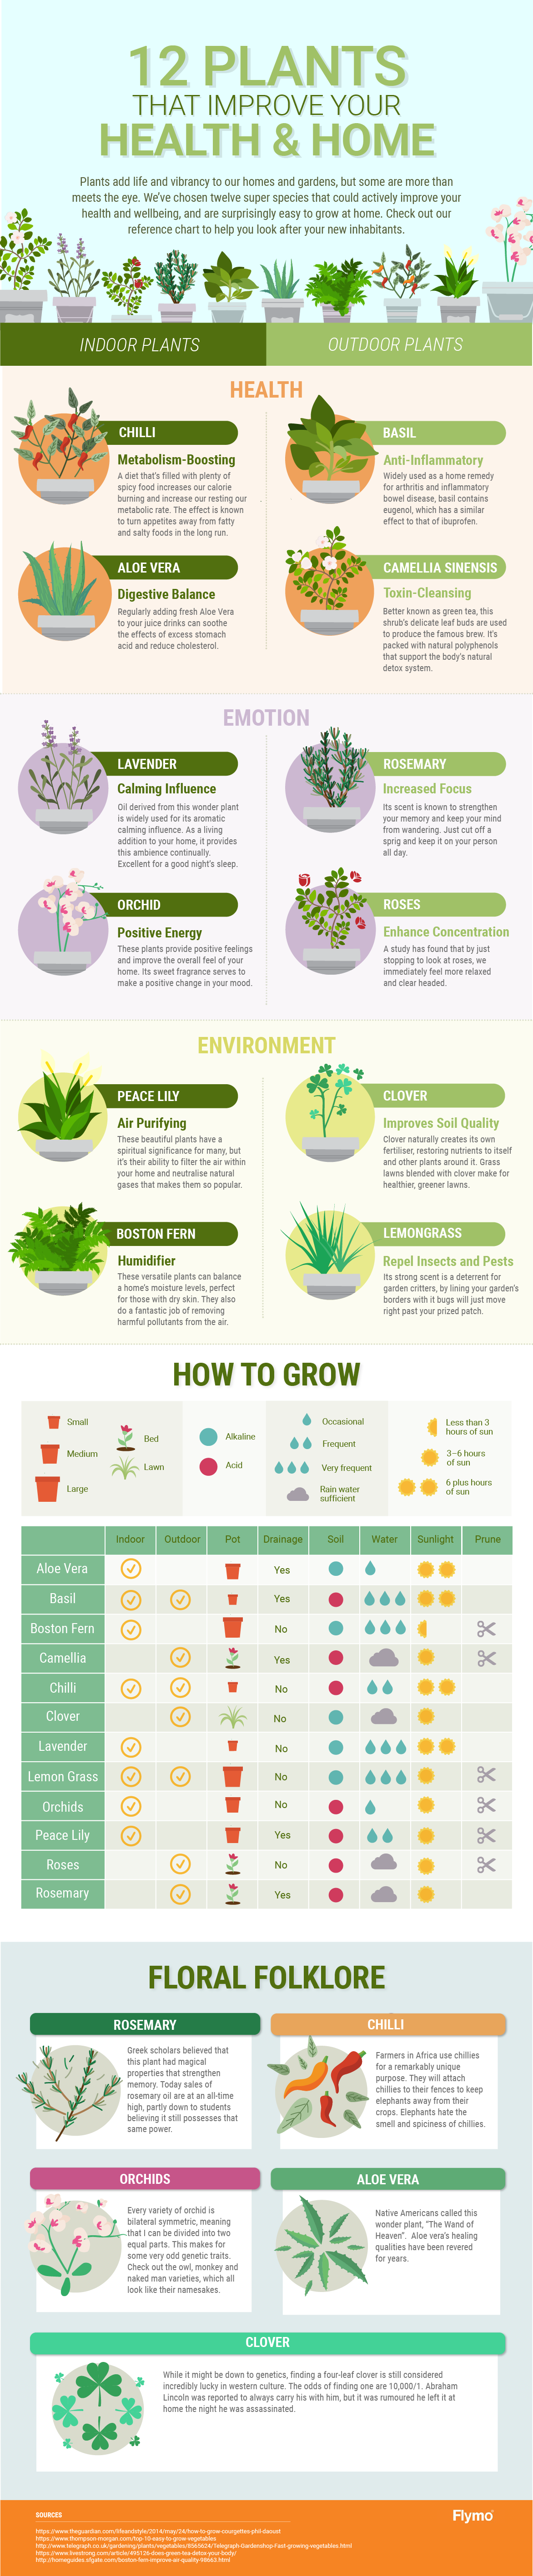 12 plants that improve your health and home #infographic